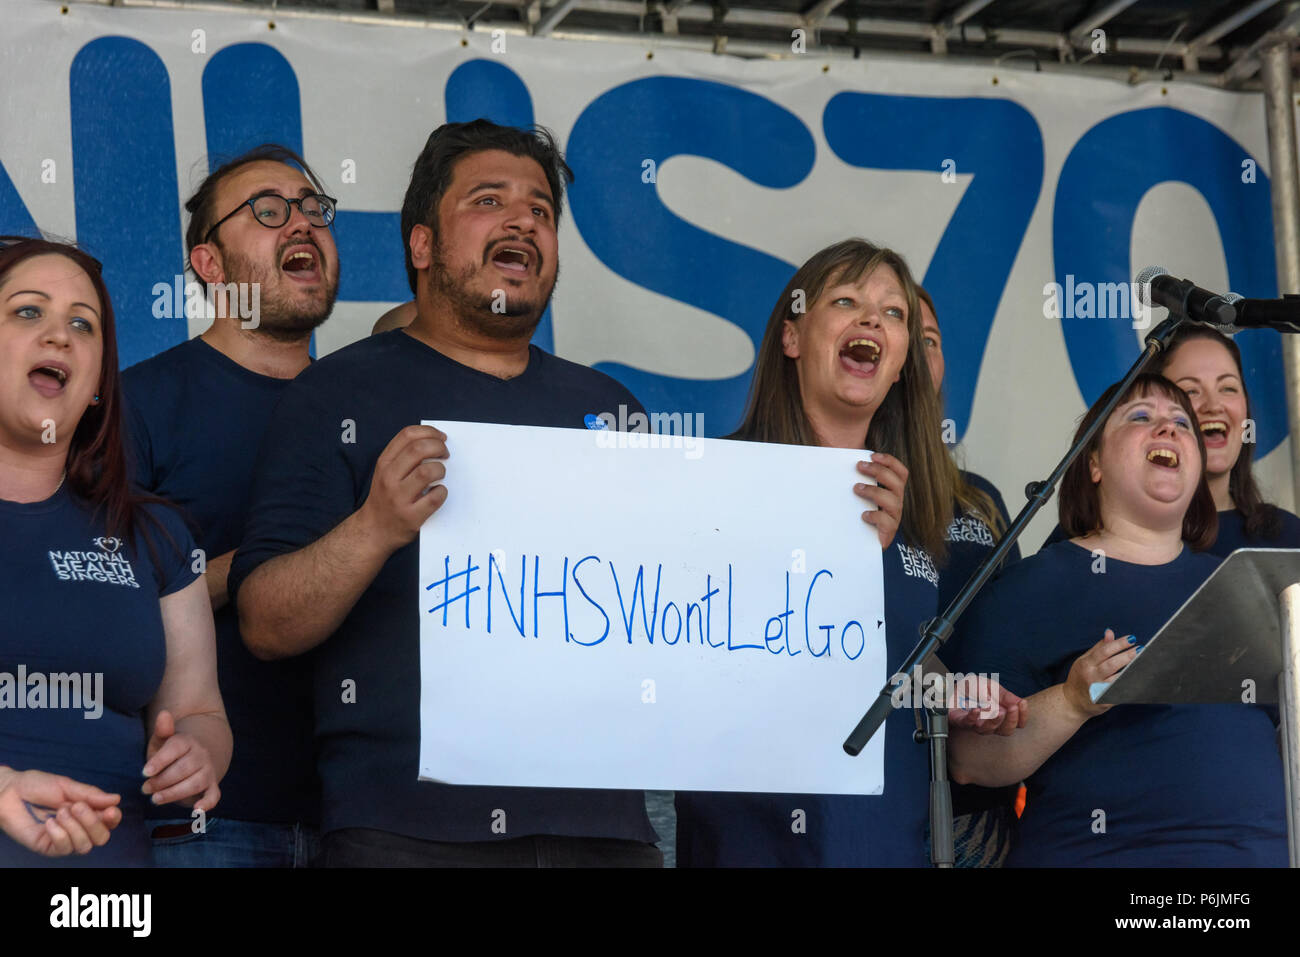 June 30, 2018 - London, UK. 30th June 2018. The NHS singers begin the rally near Downing St to celebrate 70 years of the NHS, and to support its dedicated workers in demanding a publicly owned NHS that is free for all with proper funding and proper staffing and providing a world class services for every community. The protest, organised by the the People's Assembly, Health Campaigns Together, Trades Union Congress, Unison, Unite, GMB, British Medical Association, Royal College of Nursing, Royal College of Midwives, CSP, BDA, and SoR was to defend the NHS against the increasing attacks and pr - Stock Image